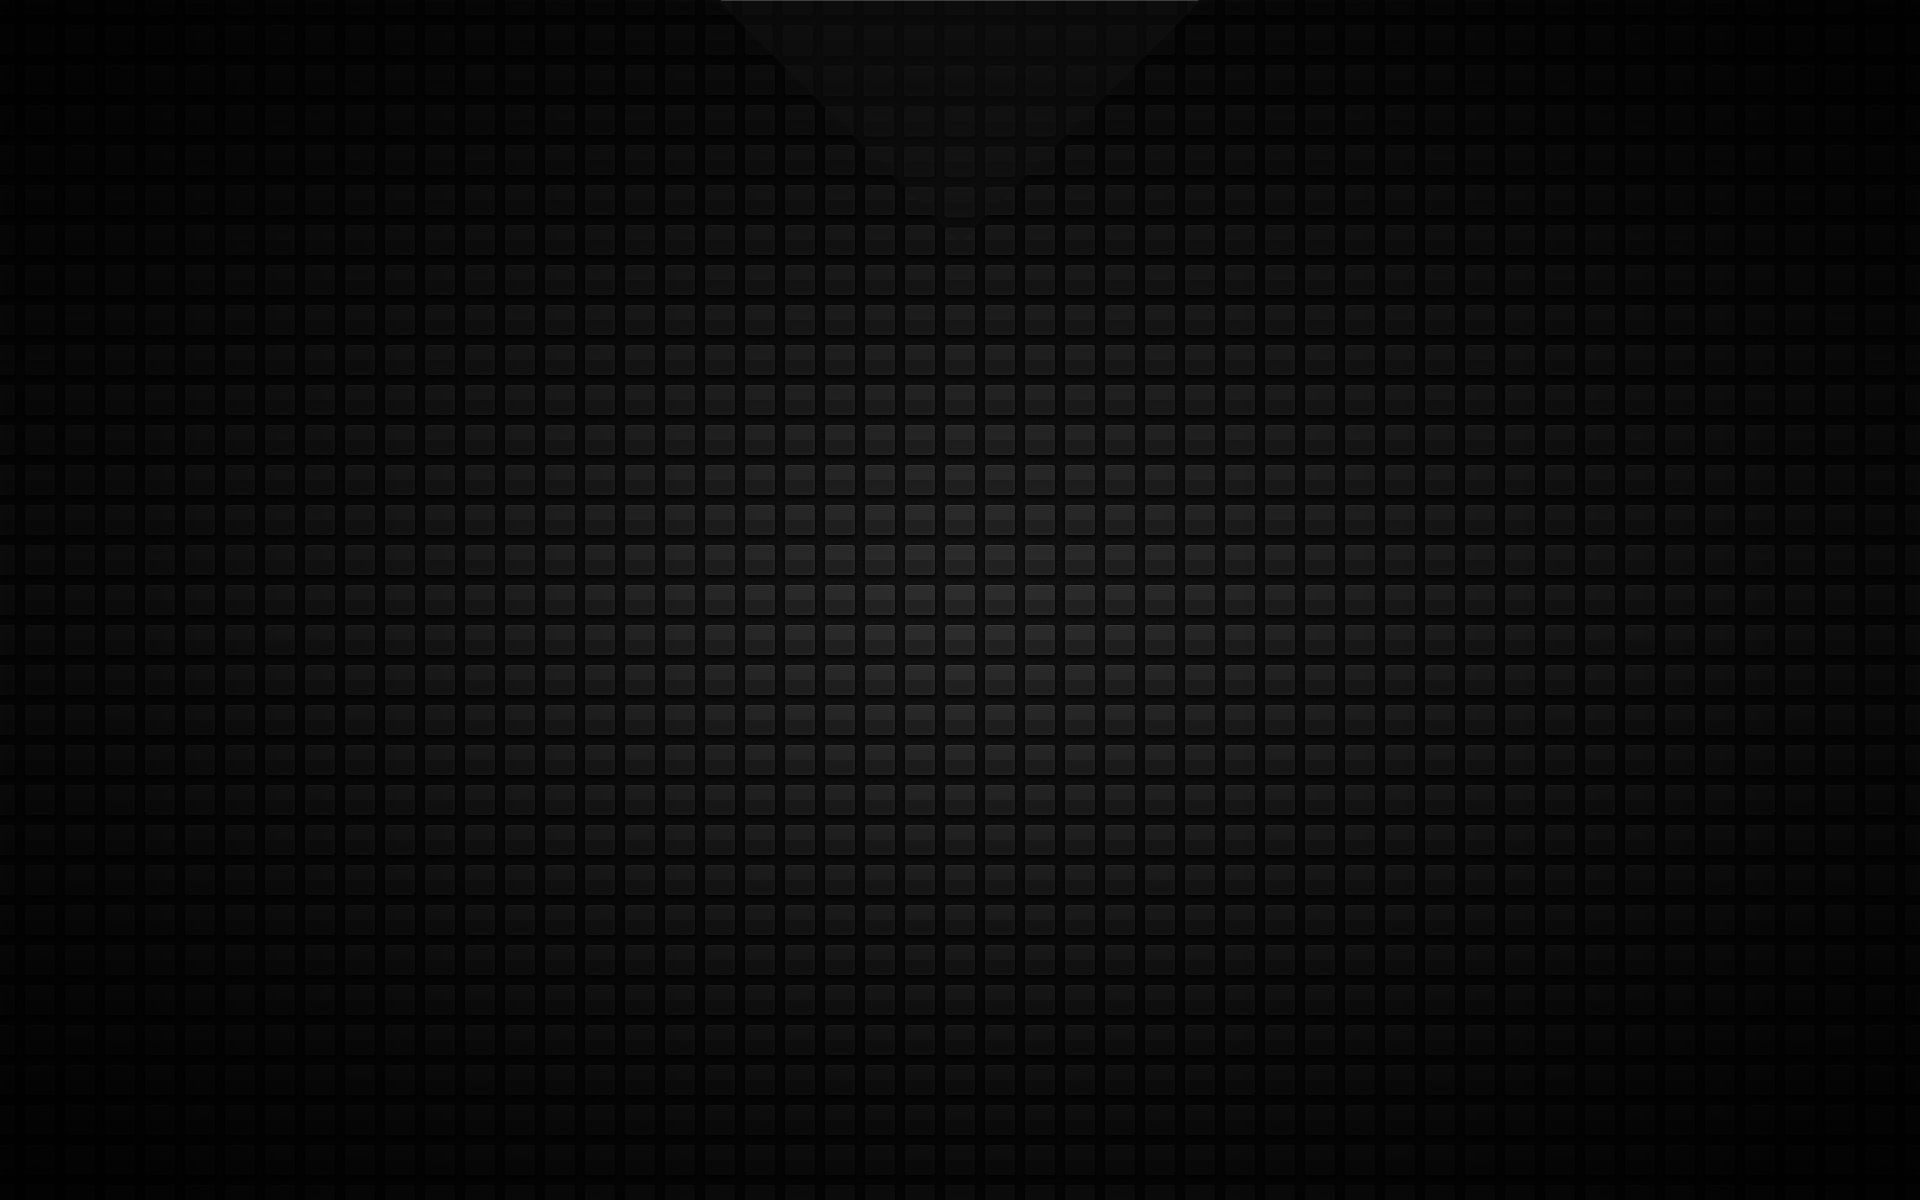 Dark grey square pattern Wallpaper #5688